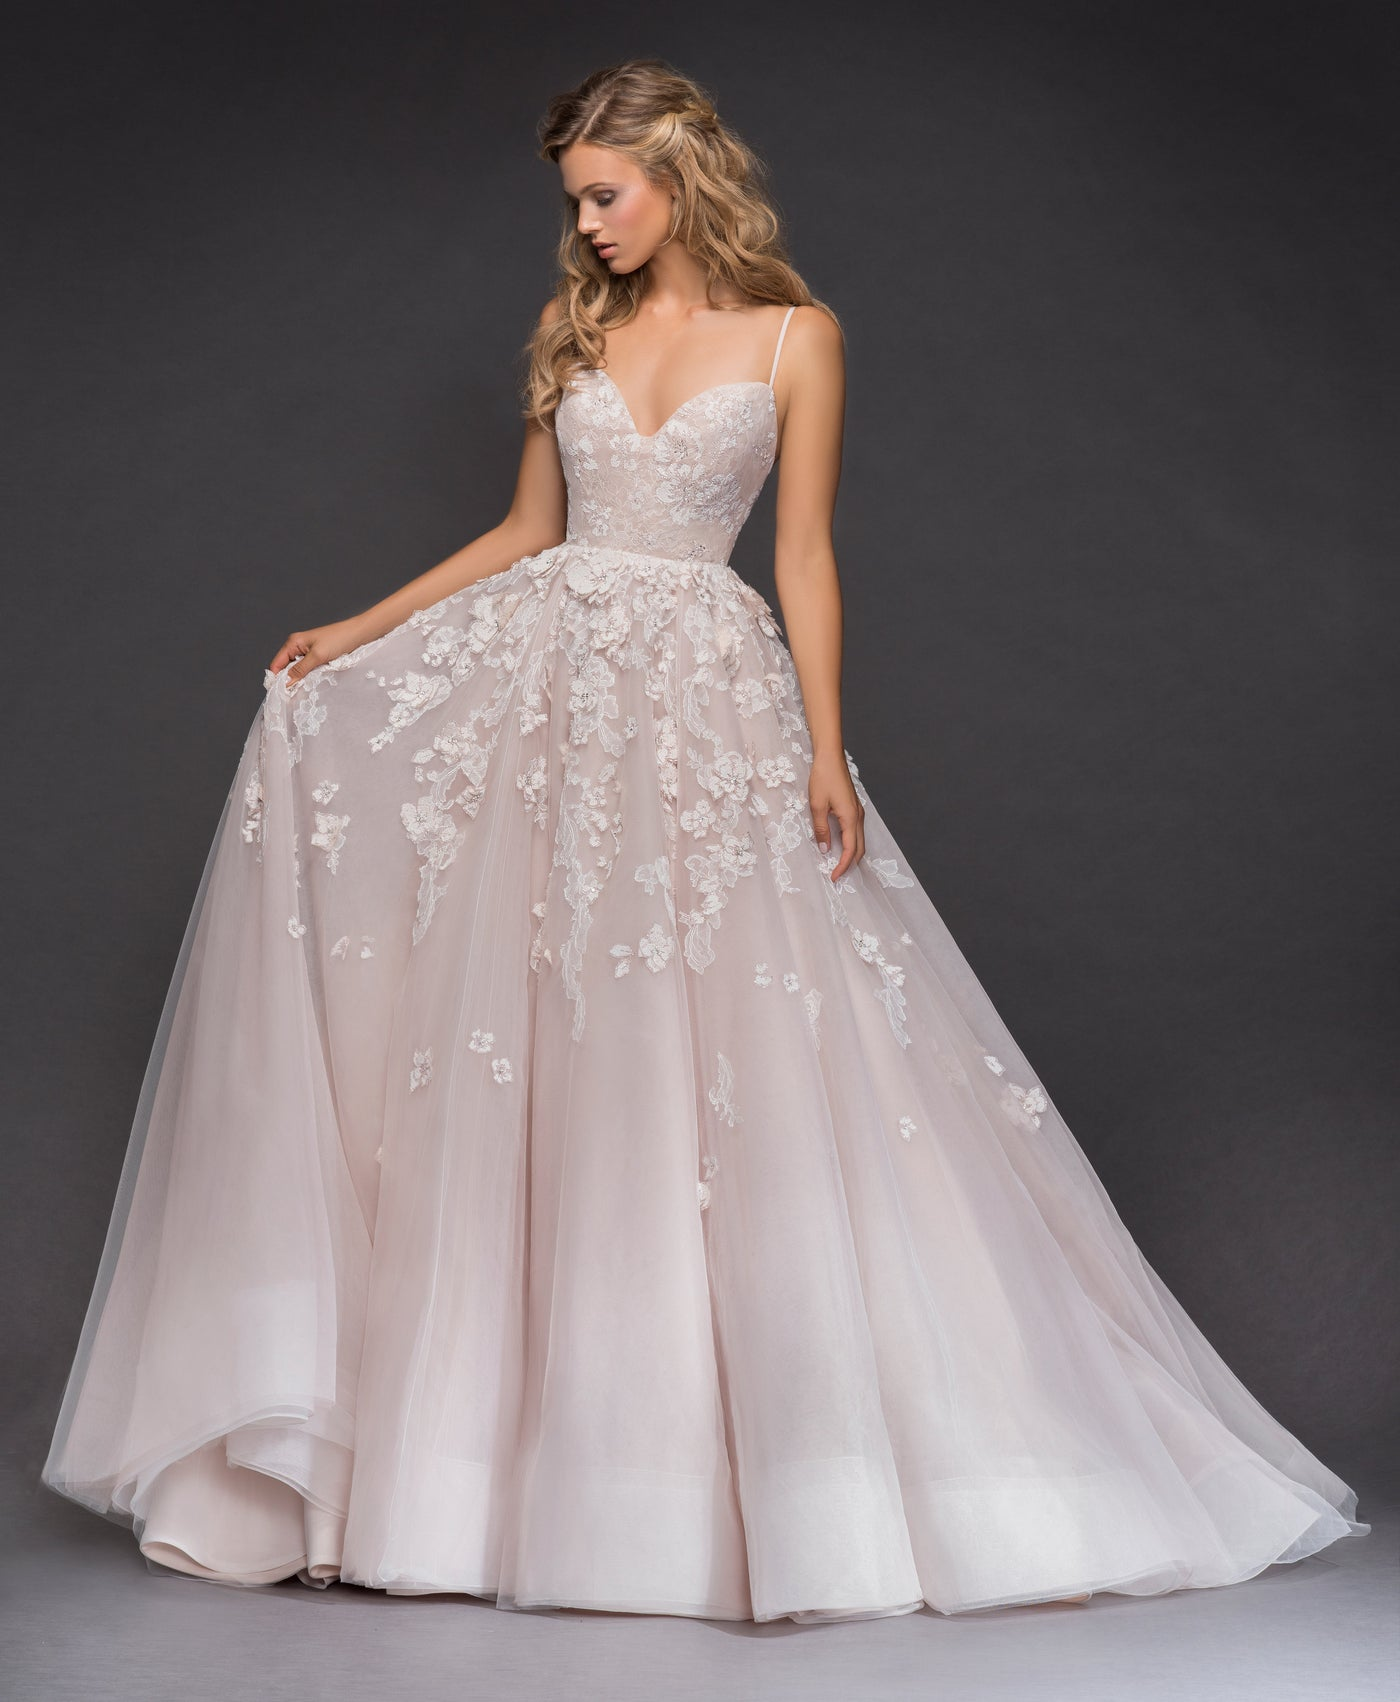 Arden - New, Gown, Hayley Paige - Eternal Bridal